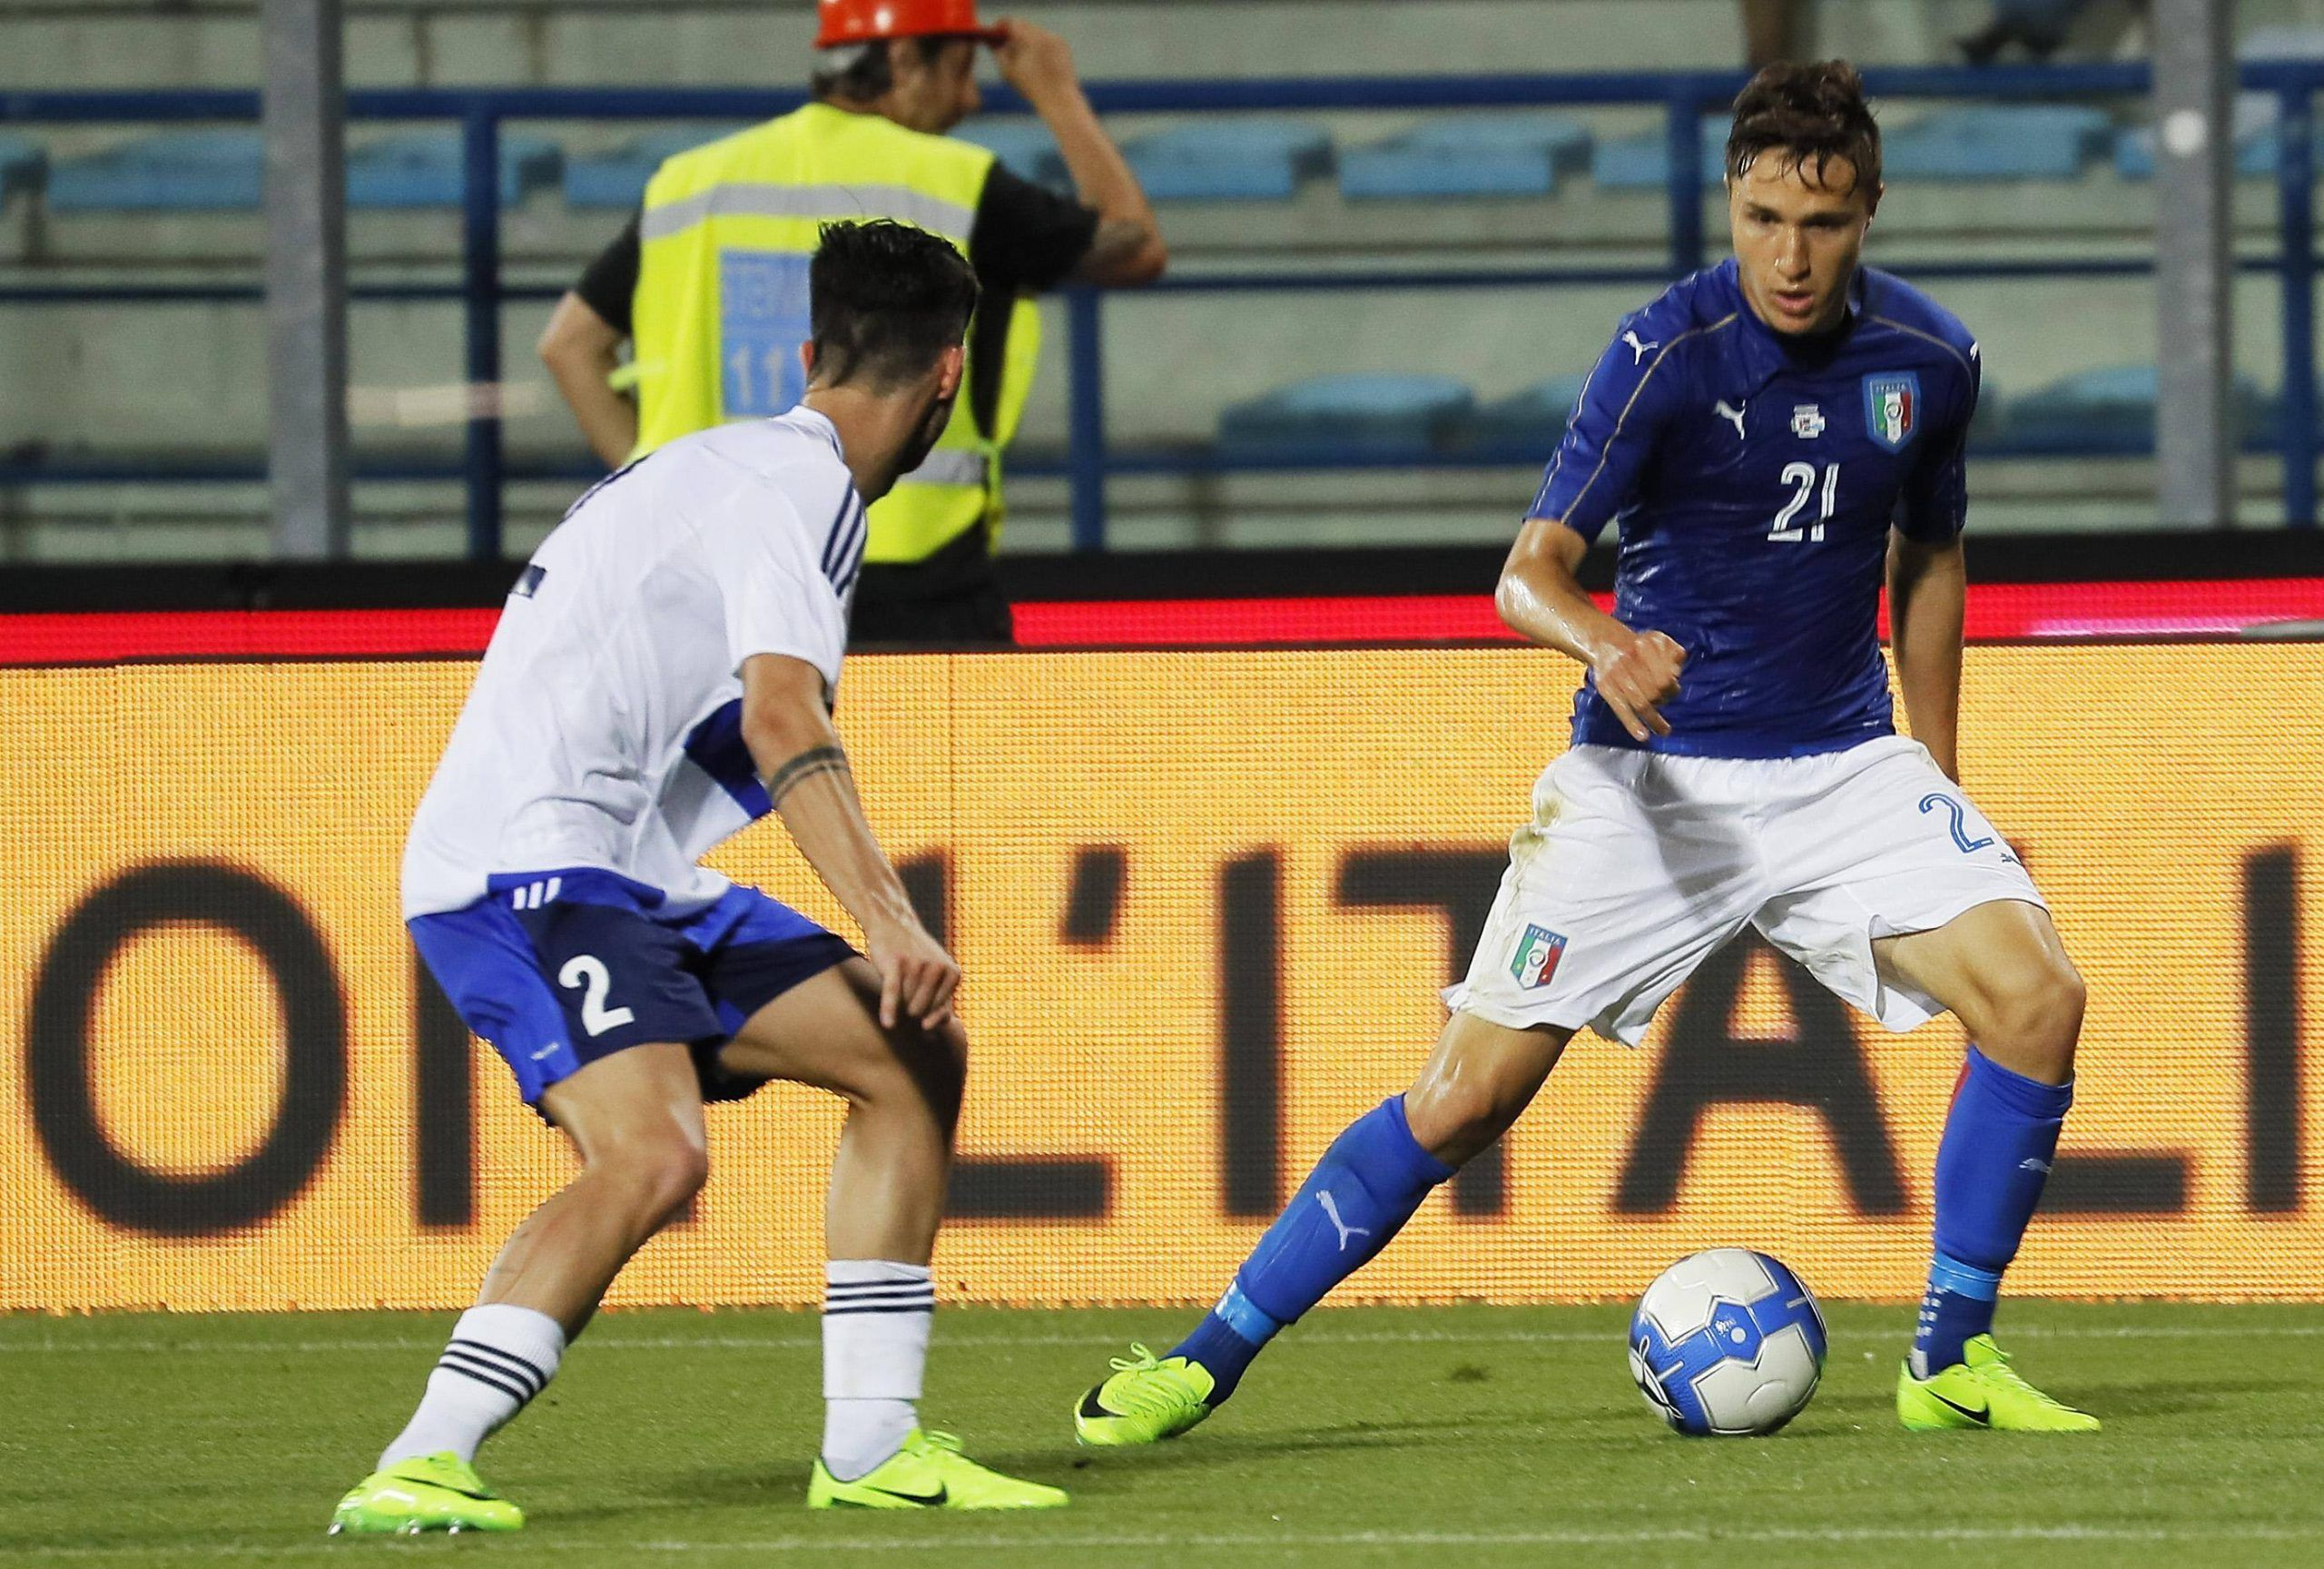 Soccer Italy's friendly match